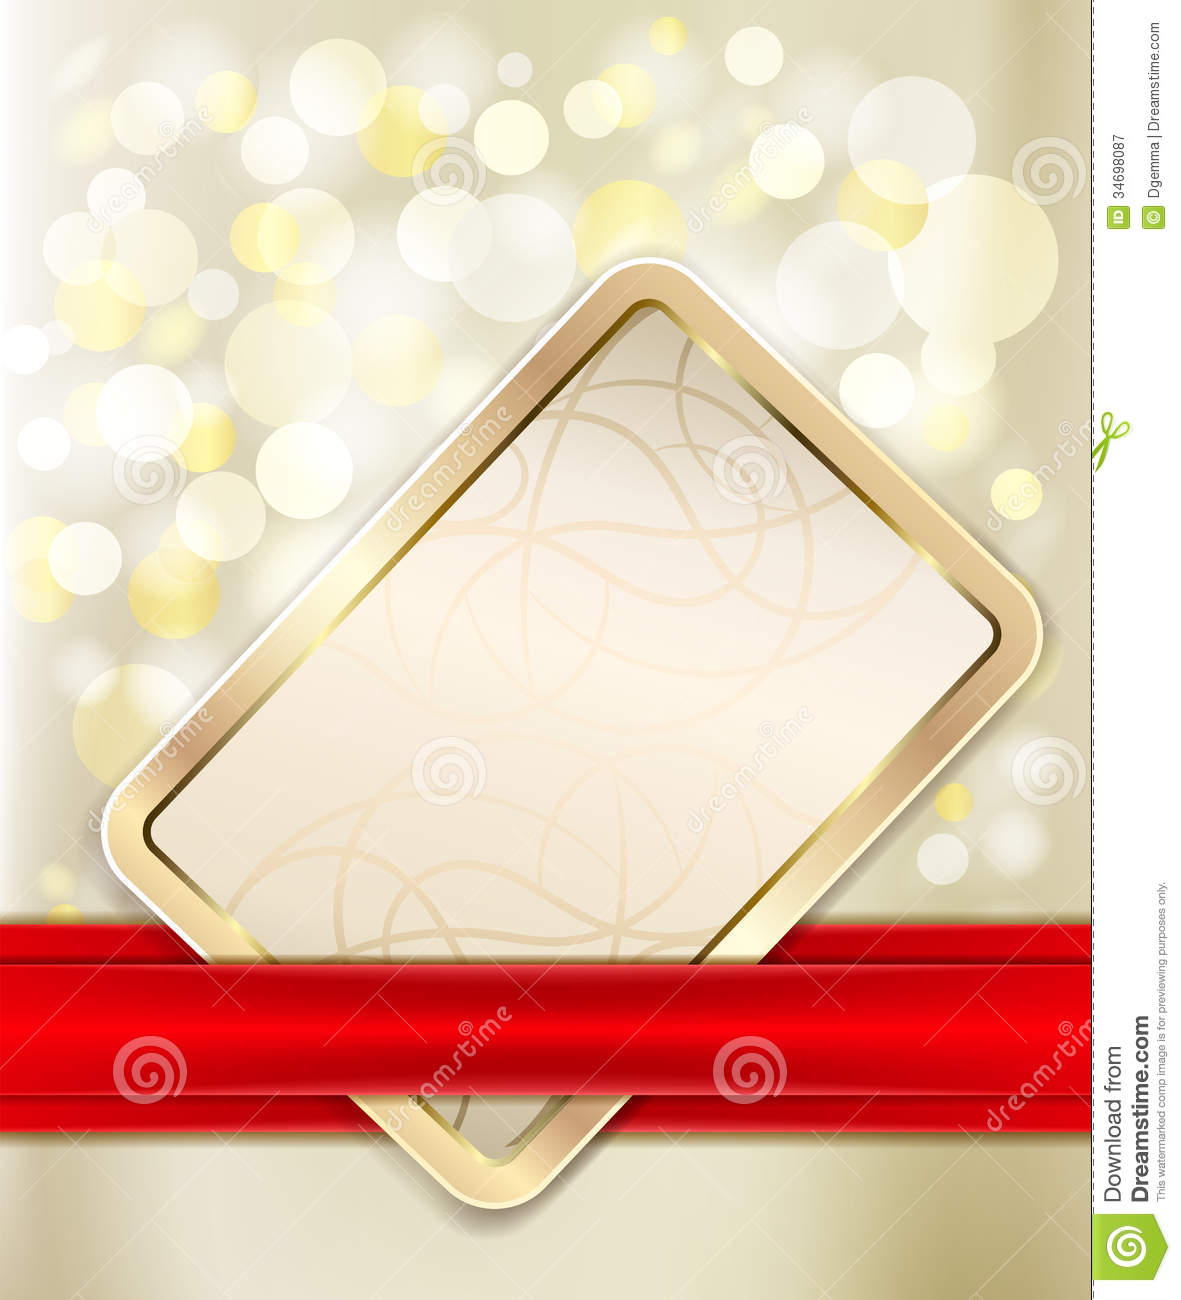 Gold Gift Card Royalty Free Stock Photography - Image: 34698087